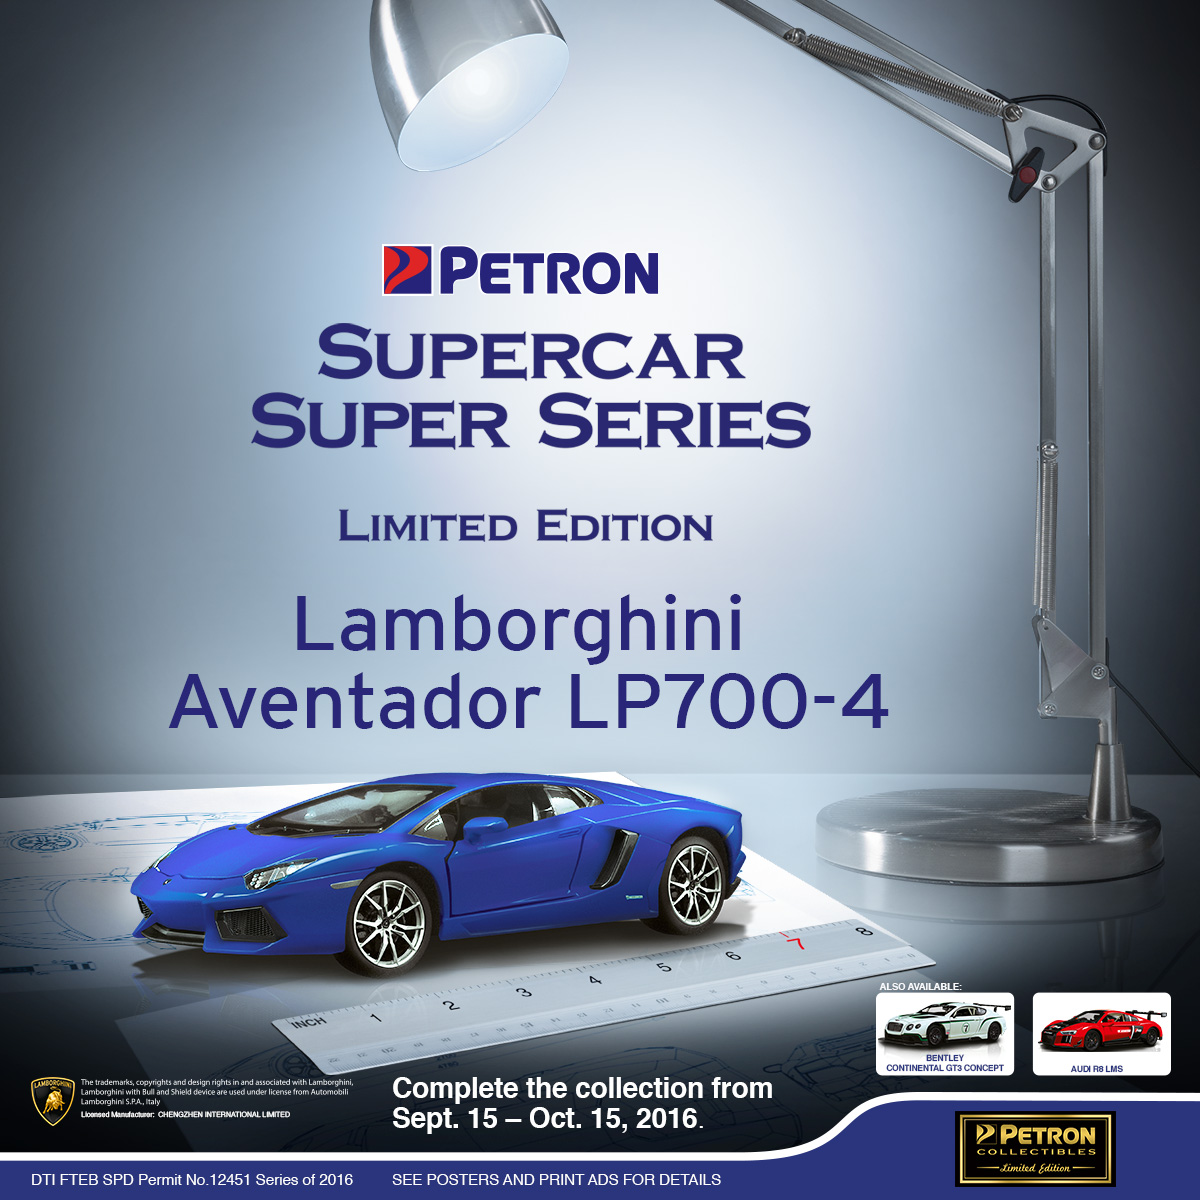 Cash Cars Kc >> Bring These Cars Home with Petron's Supercar Series Promo | Philippine Car News, Car Reviews ...